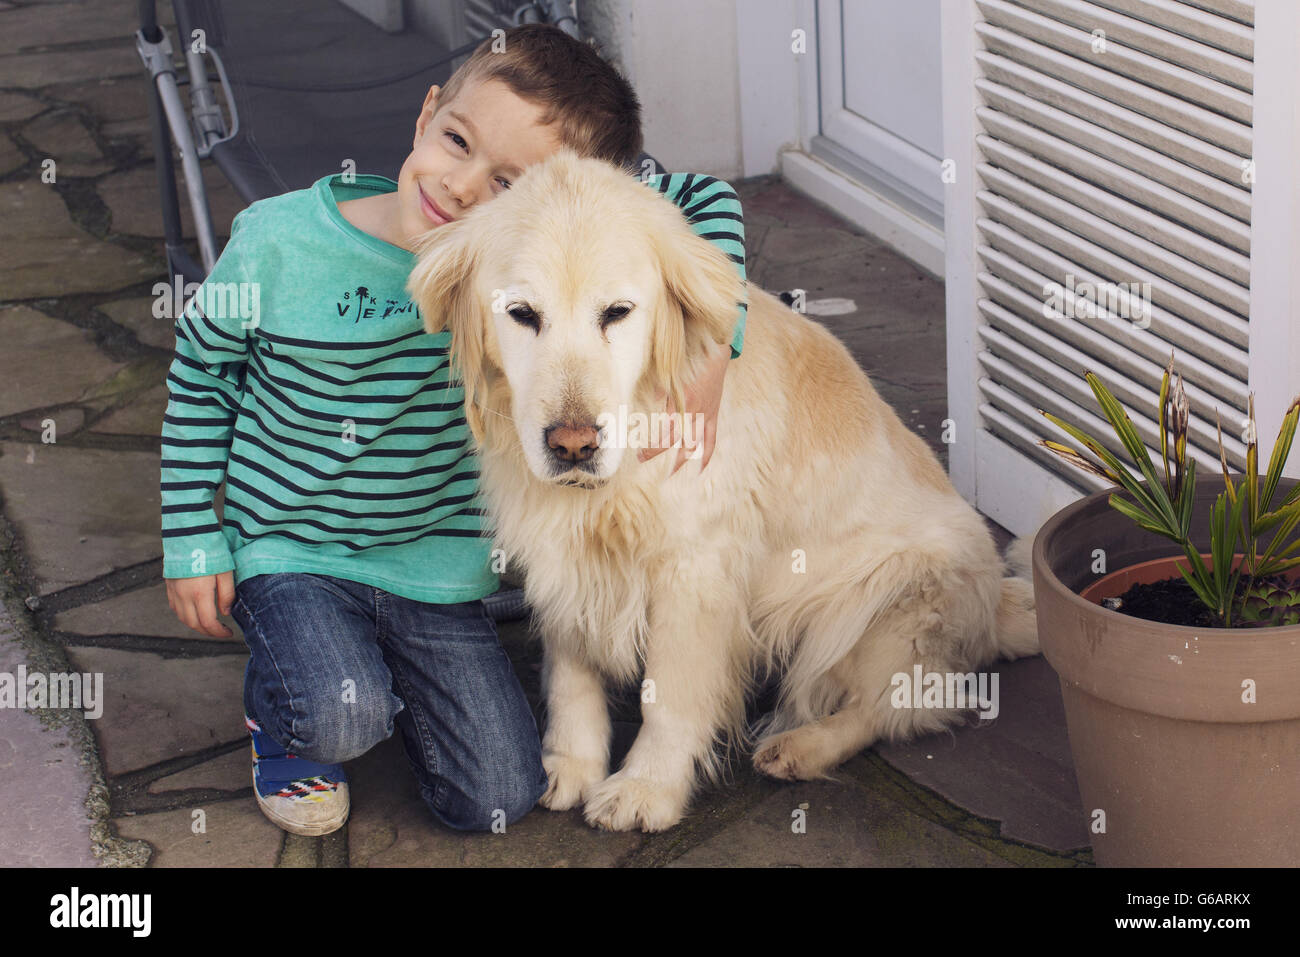 Boy with family dog - Stock Image